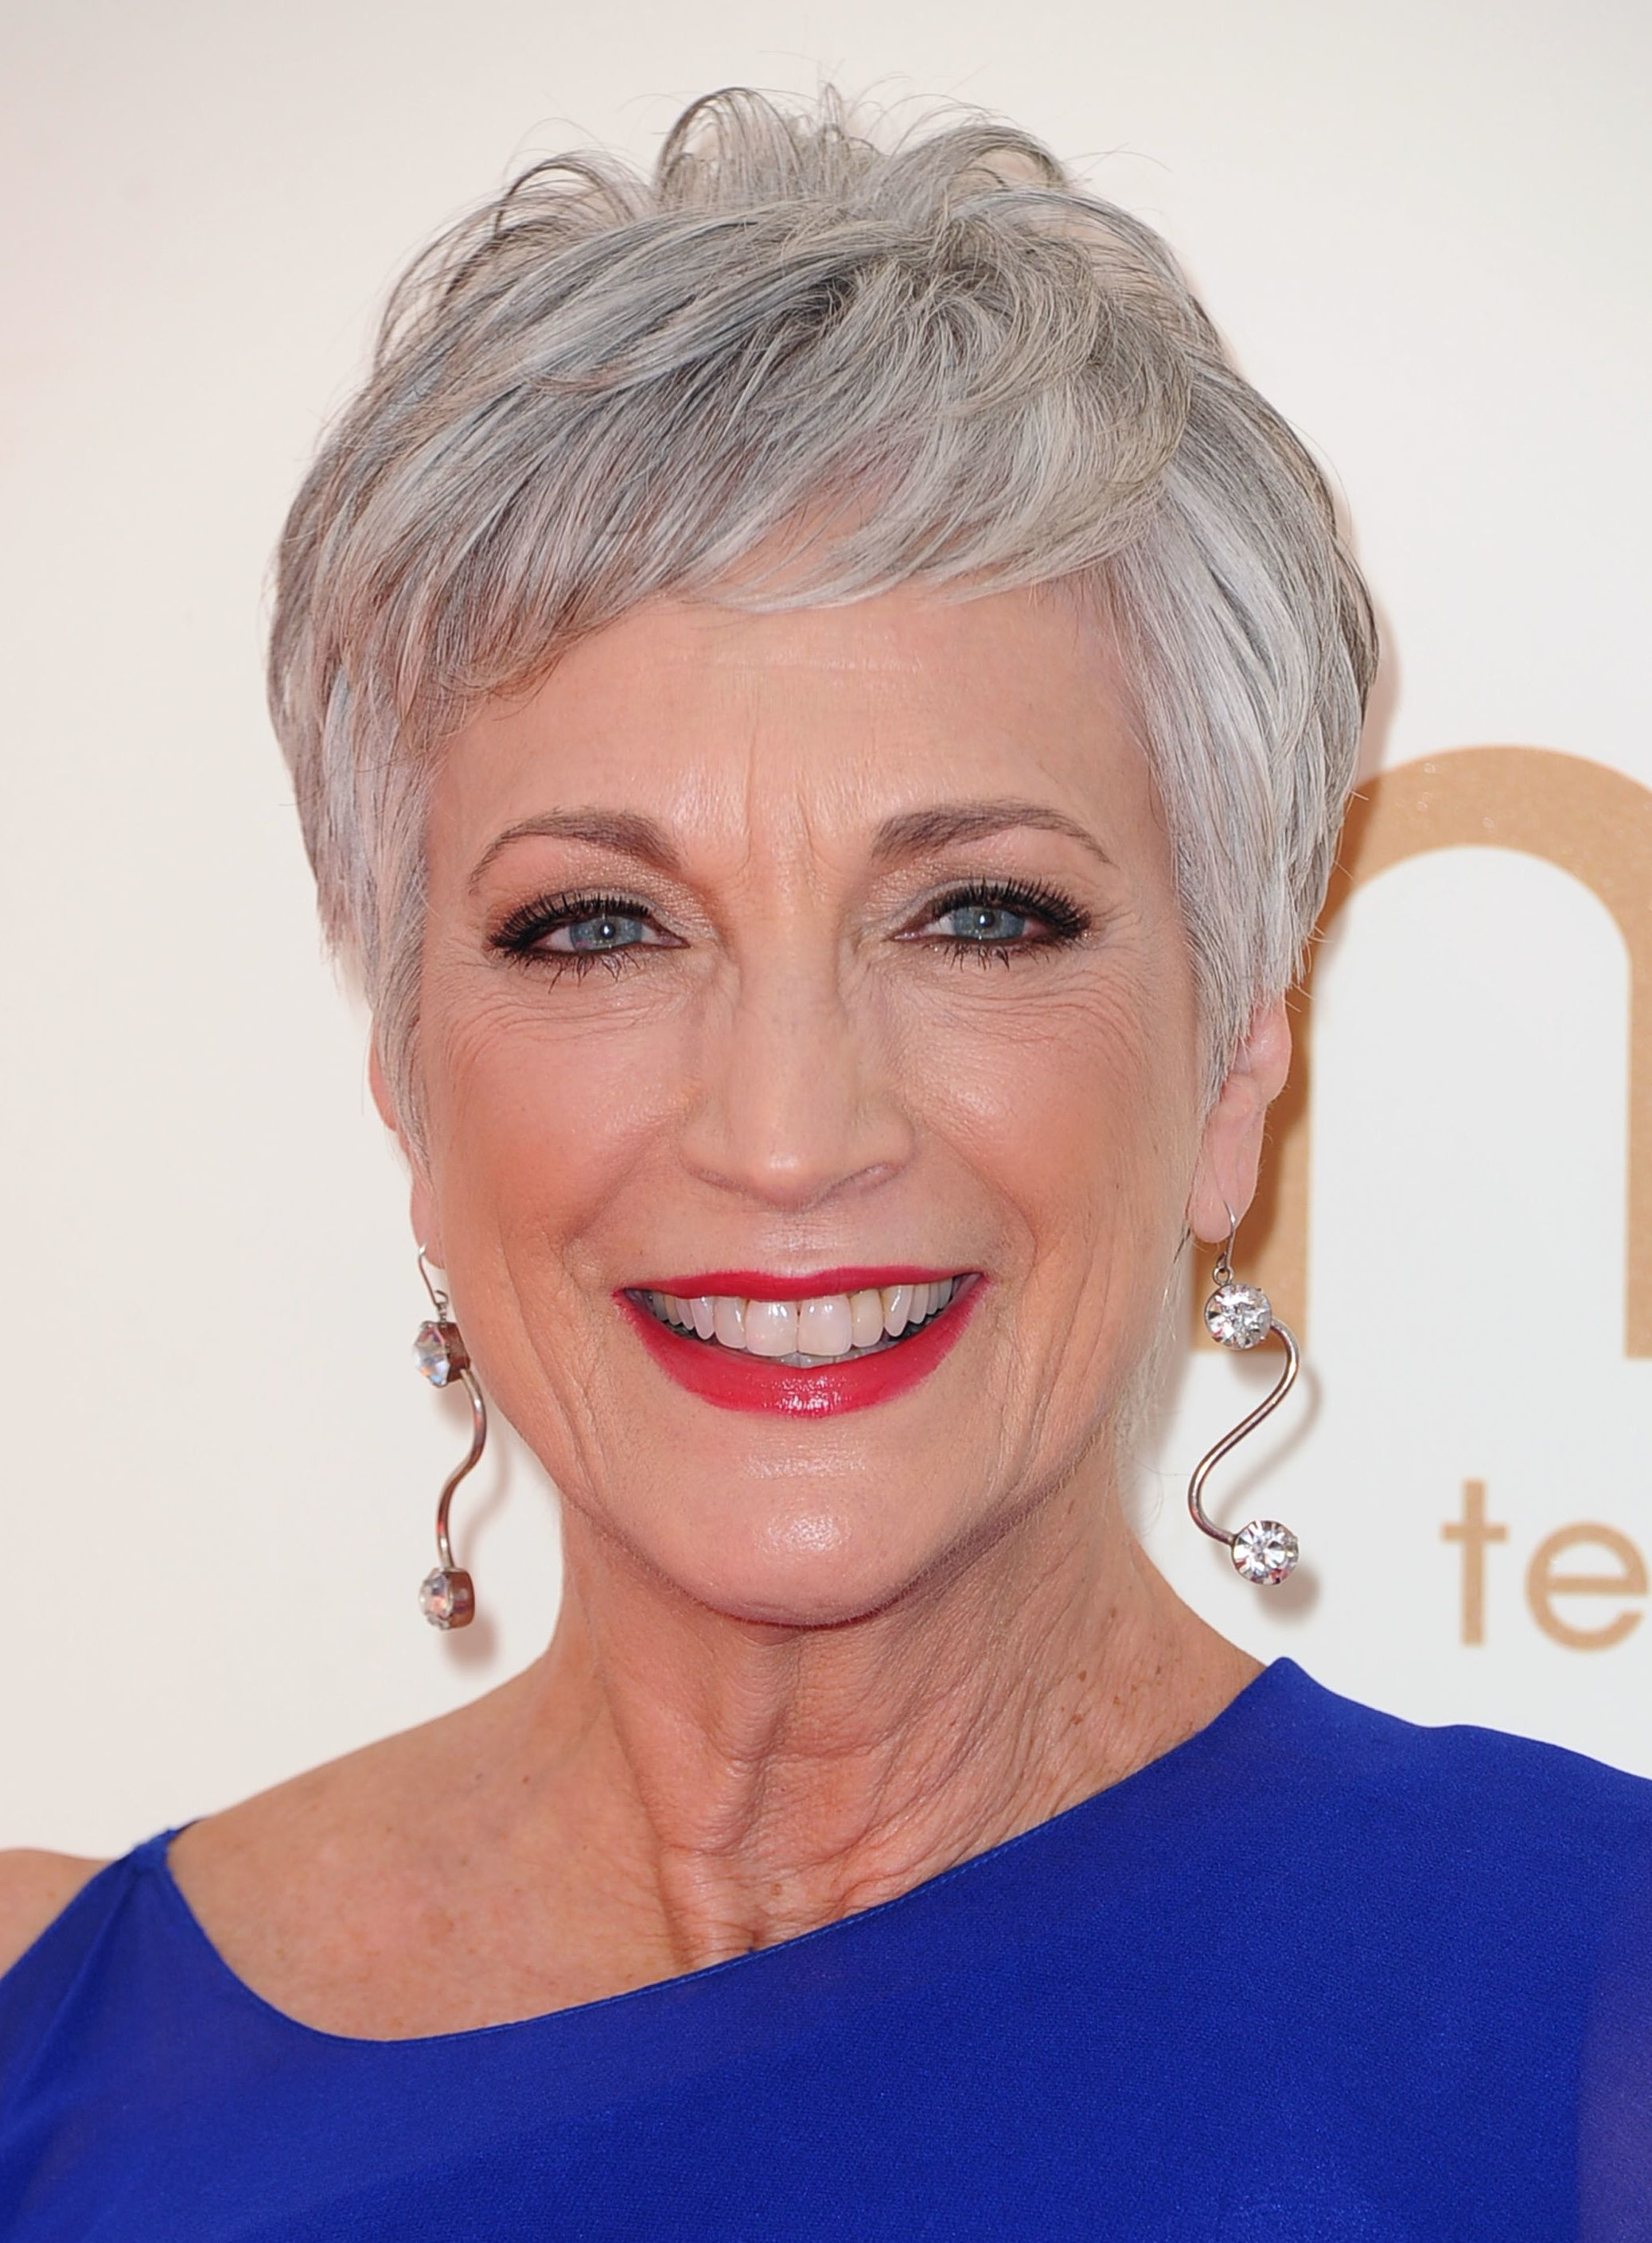 Why You Should Not Color Your Awesome Gray or Silver Hair